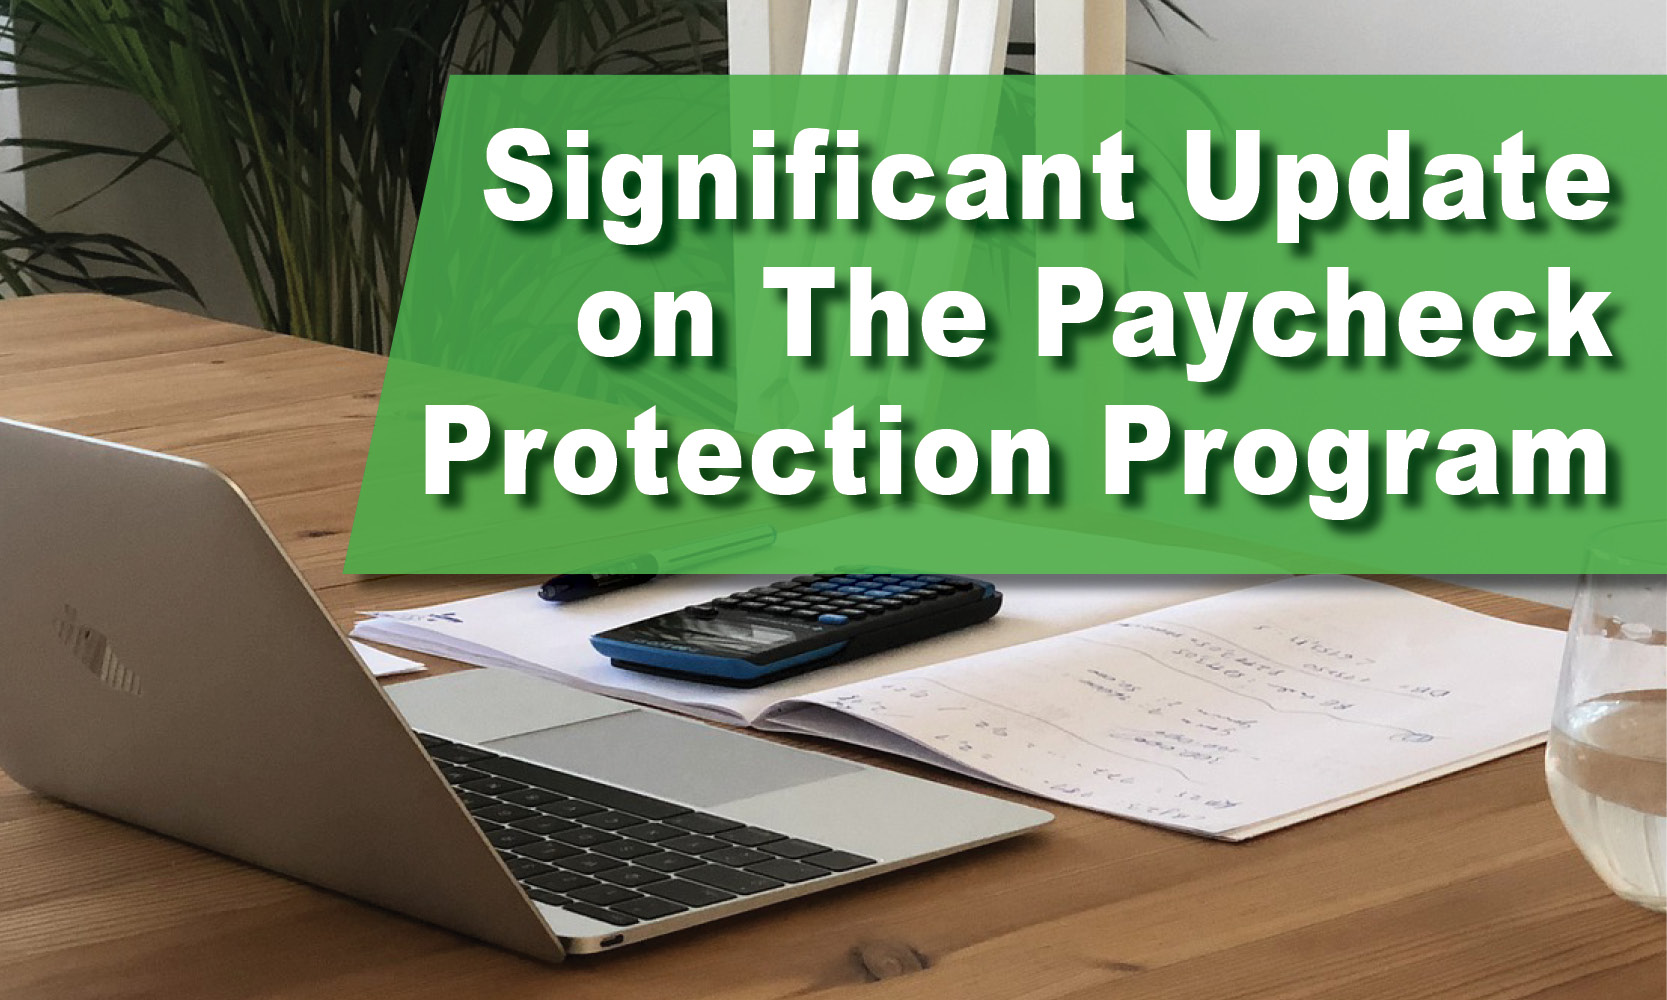 Significant Update on the Paycheck Protection Program